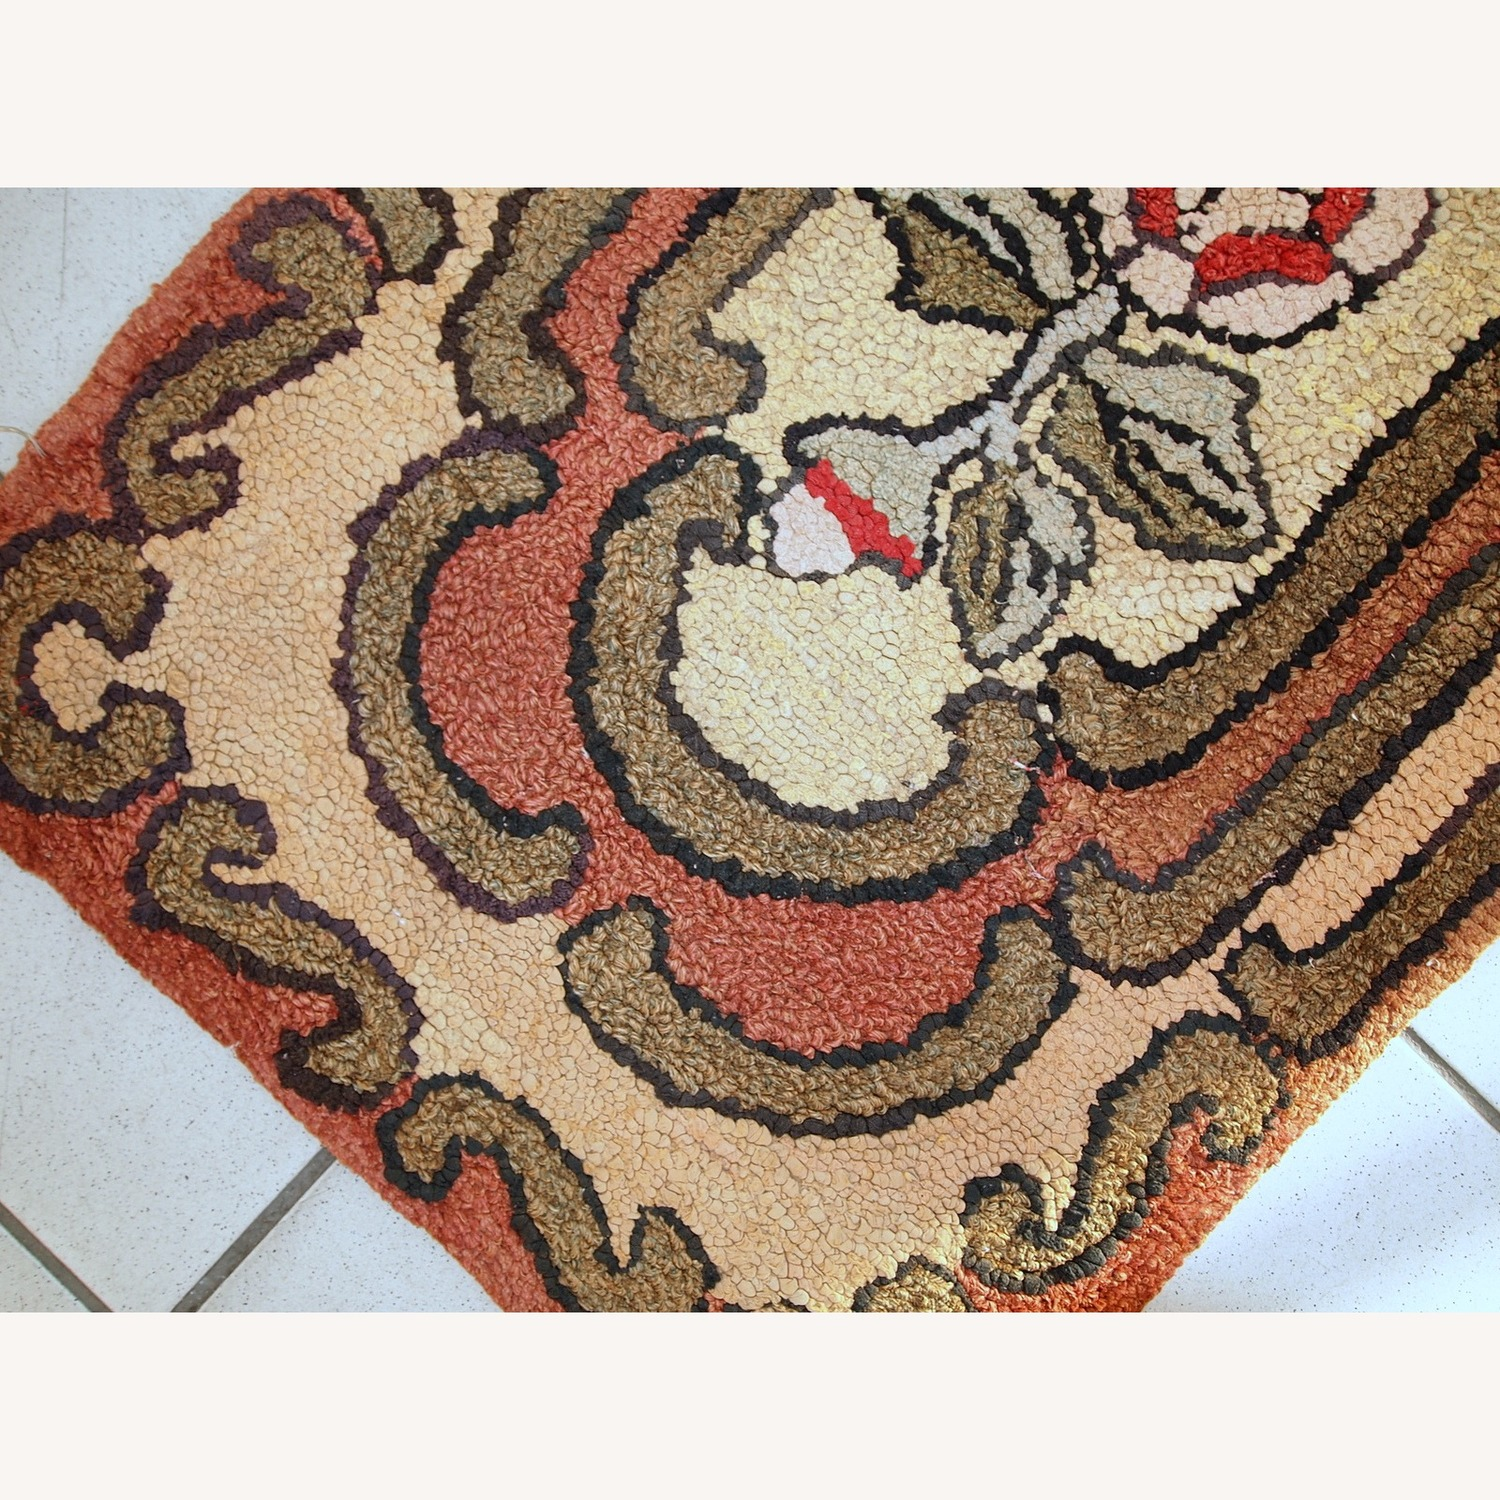 Handmade Antique American Hooked Rug - image-6